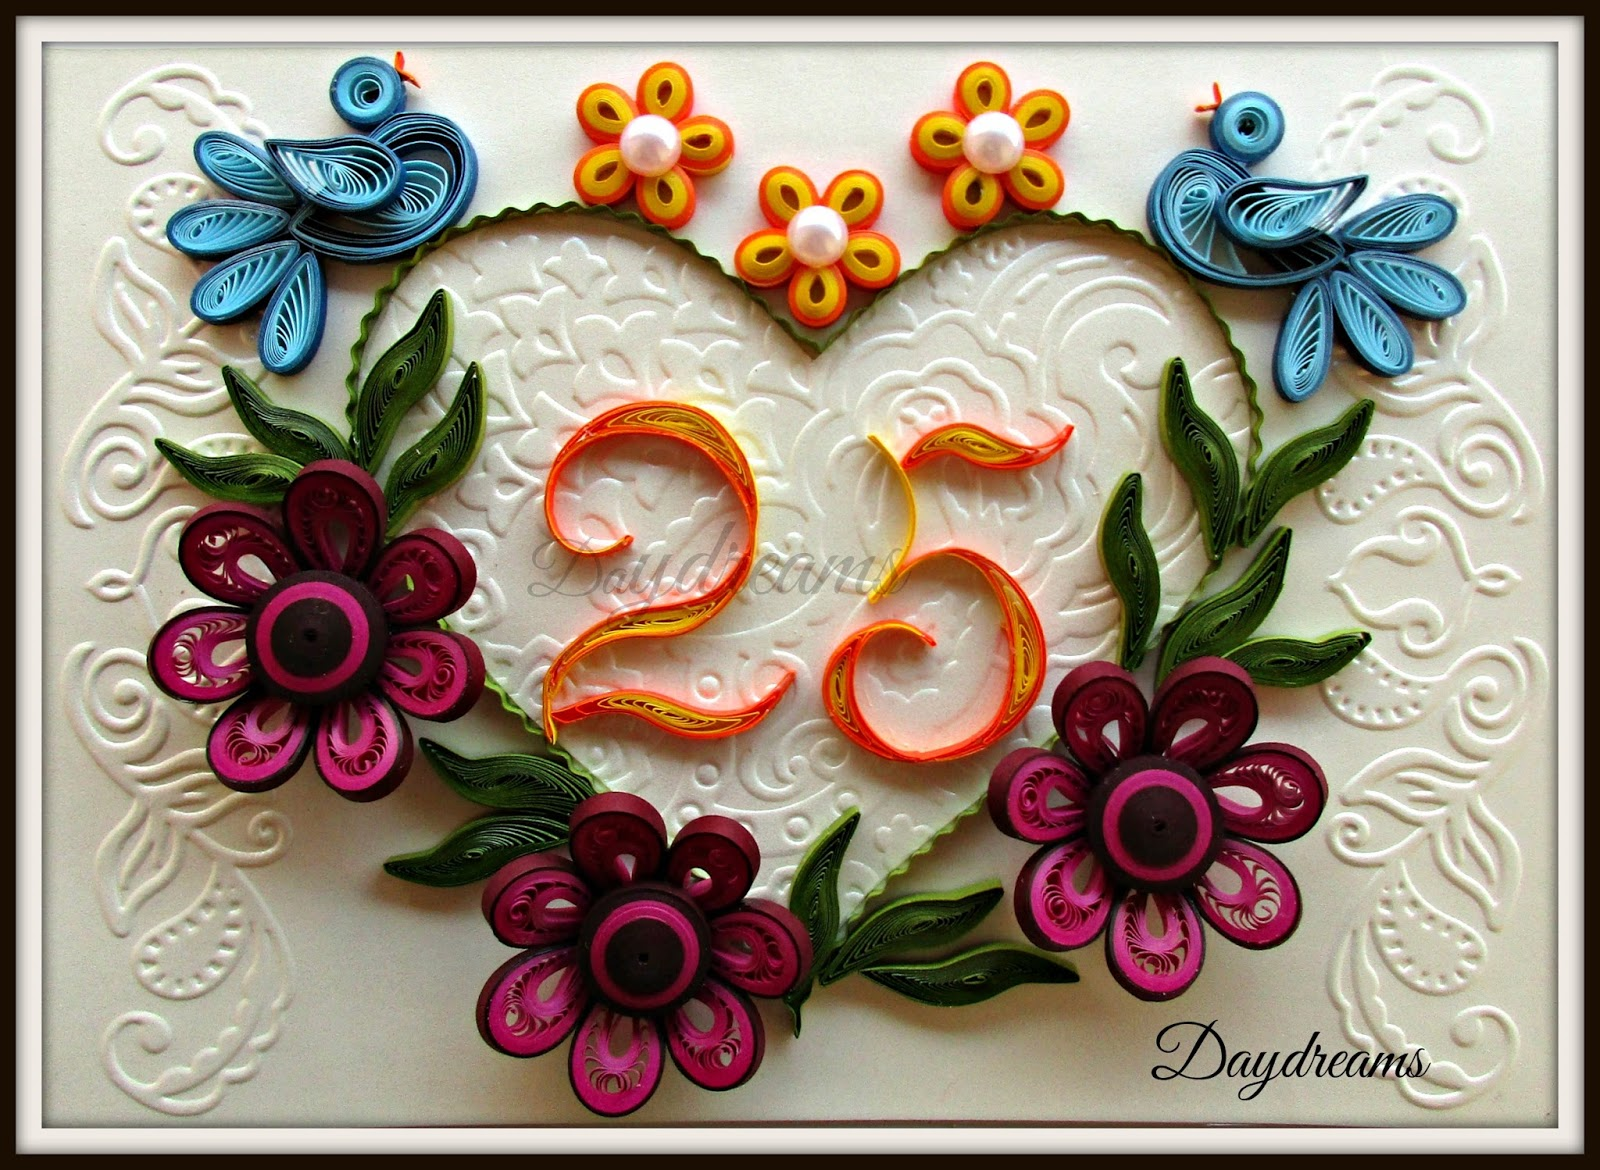 Daydreams quilled twenty fifth anniversary card quilled twenty fifth anniversary card negle Images